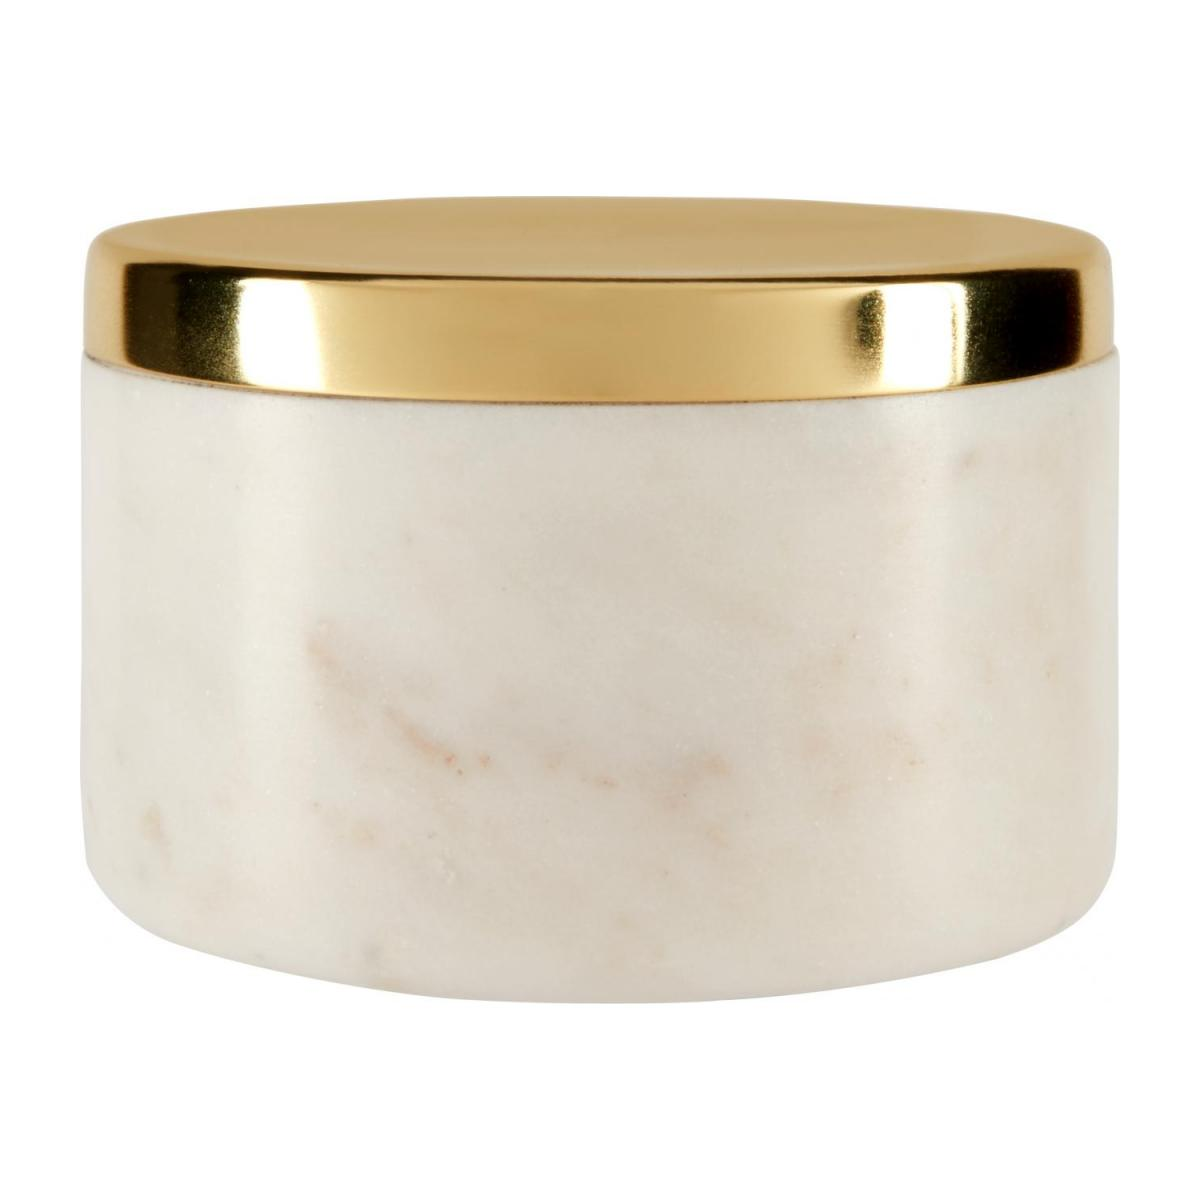 Box made of marble, golden n°1